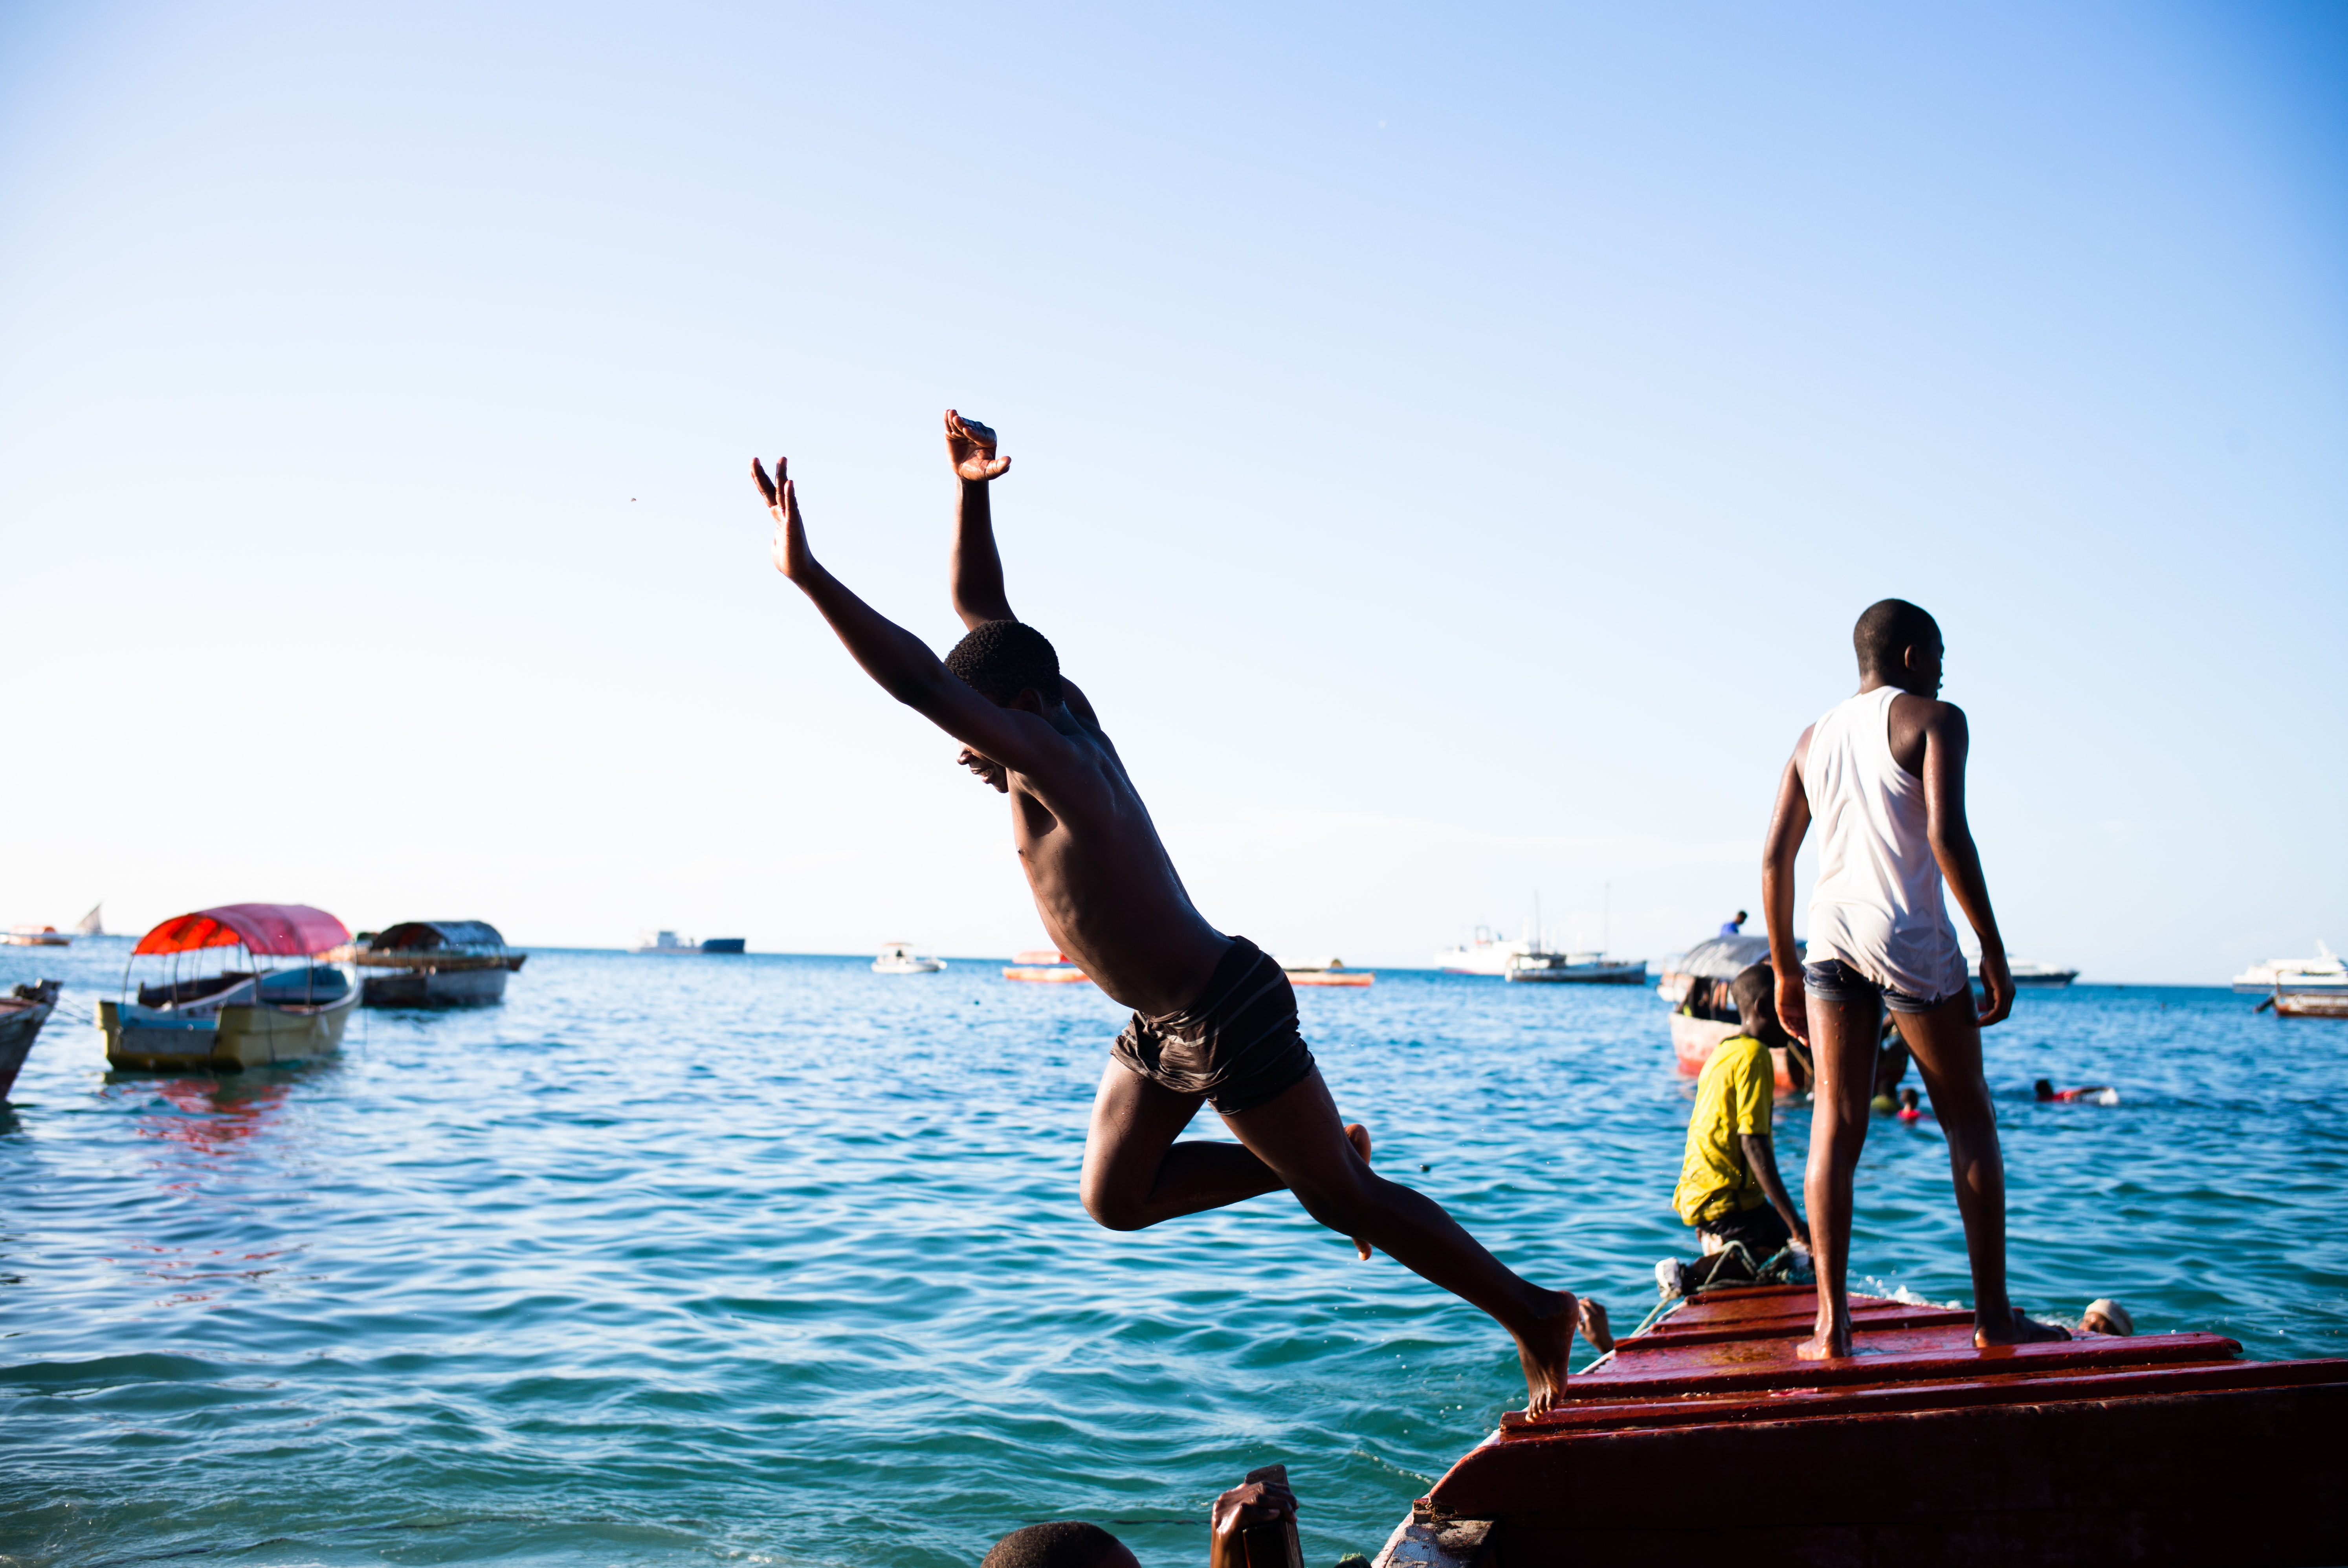 A person jumping off a dock into the water.